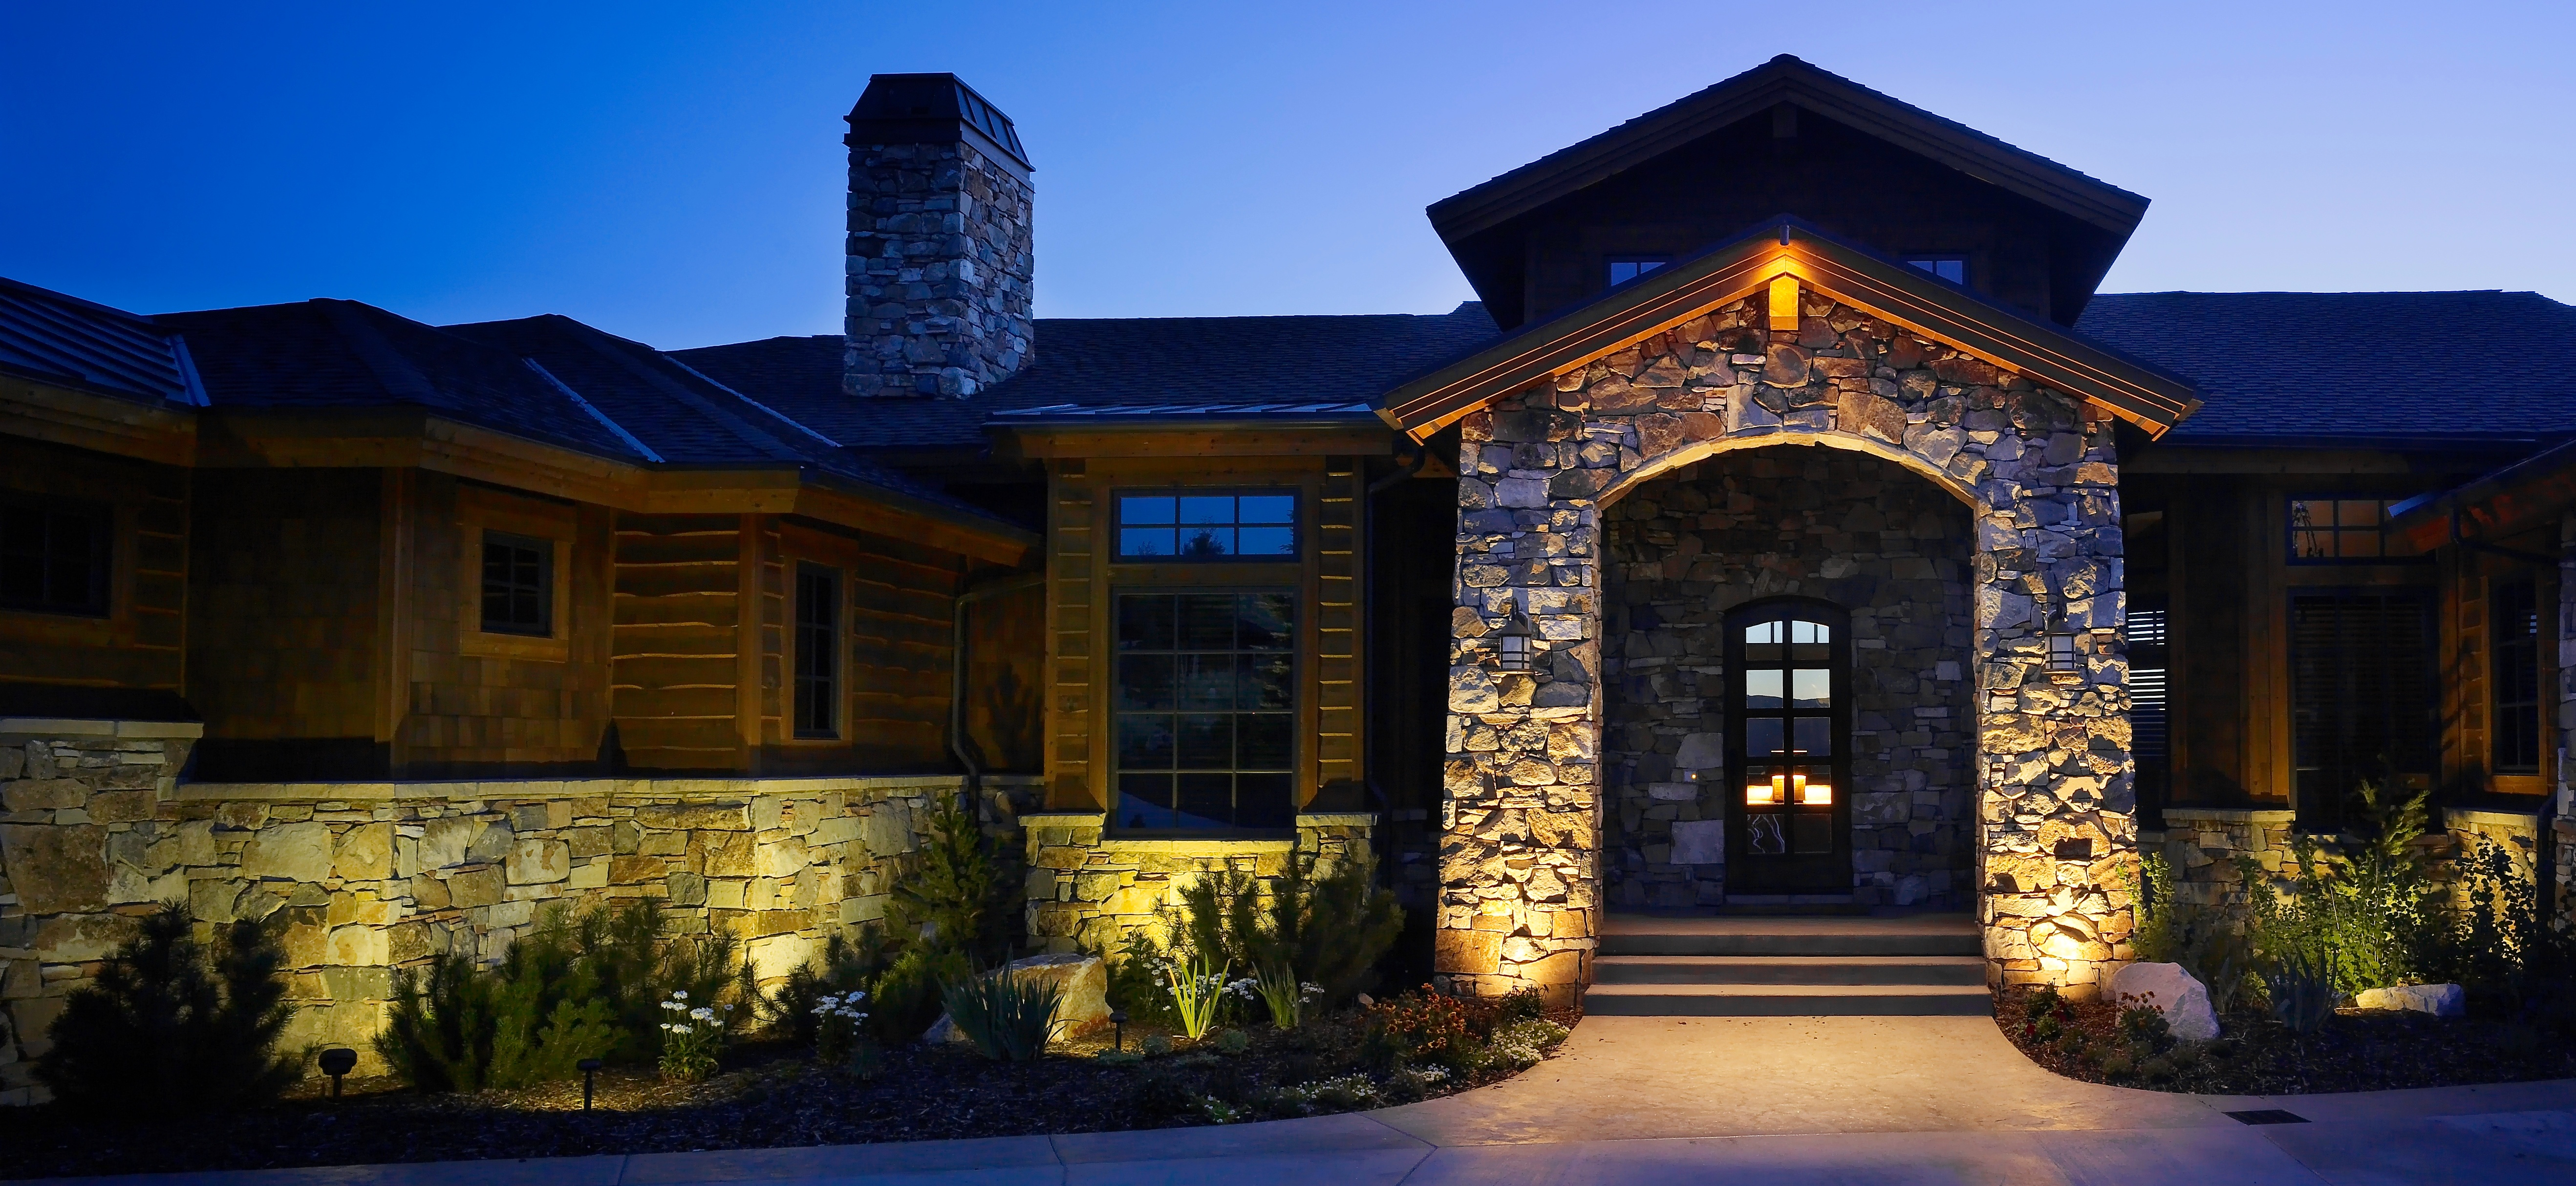 Residential Security Lighting